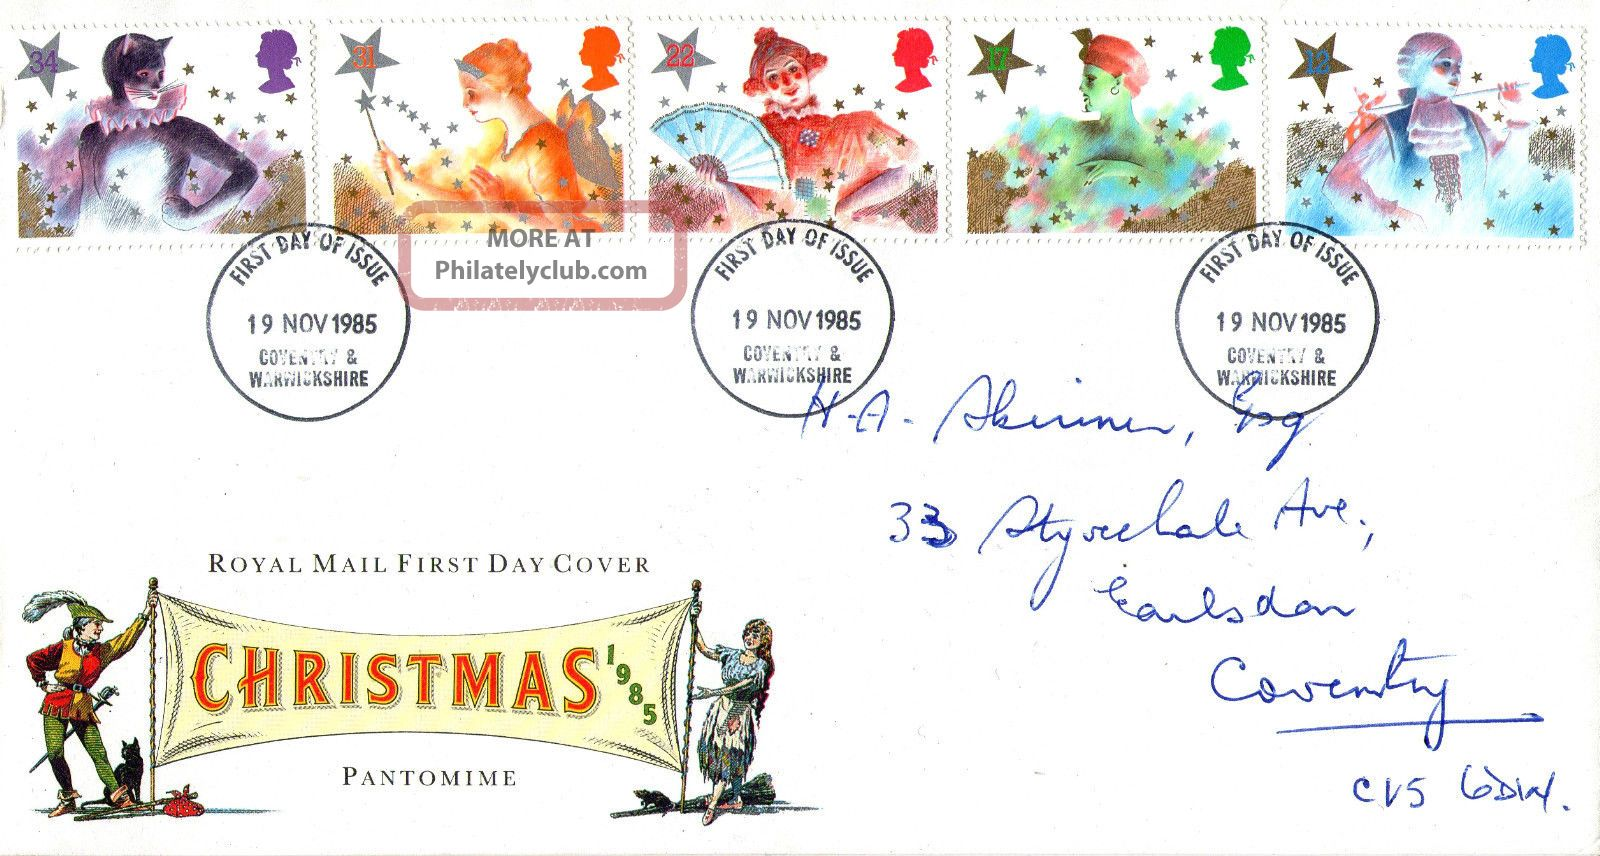 19 November 1985 Christmas Royal Mail First Day Cover Coventry Fdi Topical Stamps photo